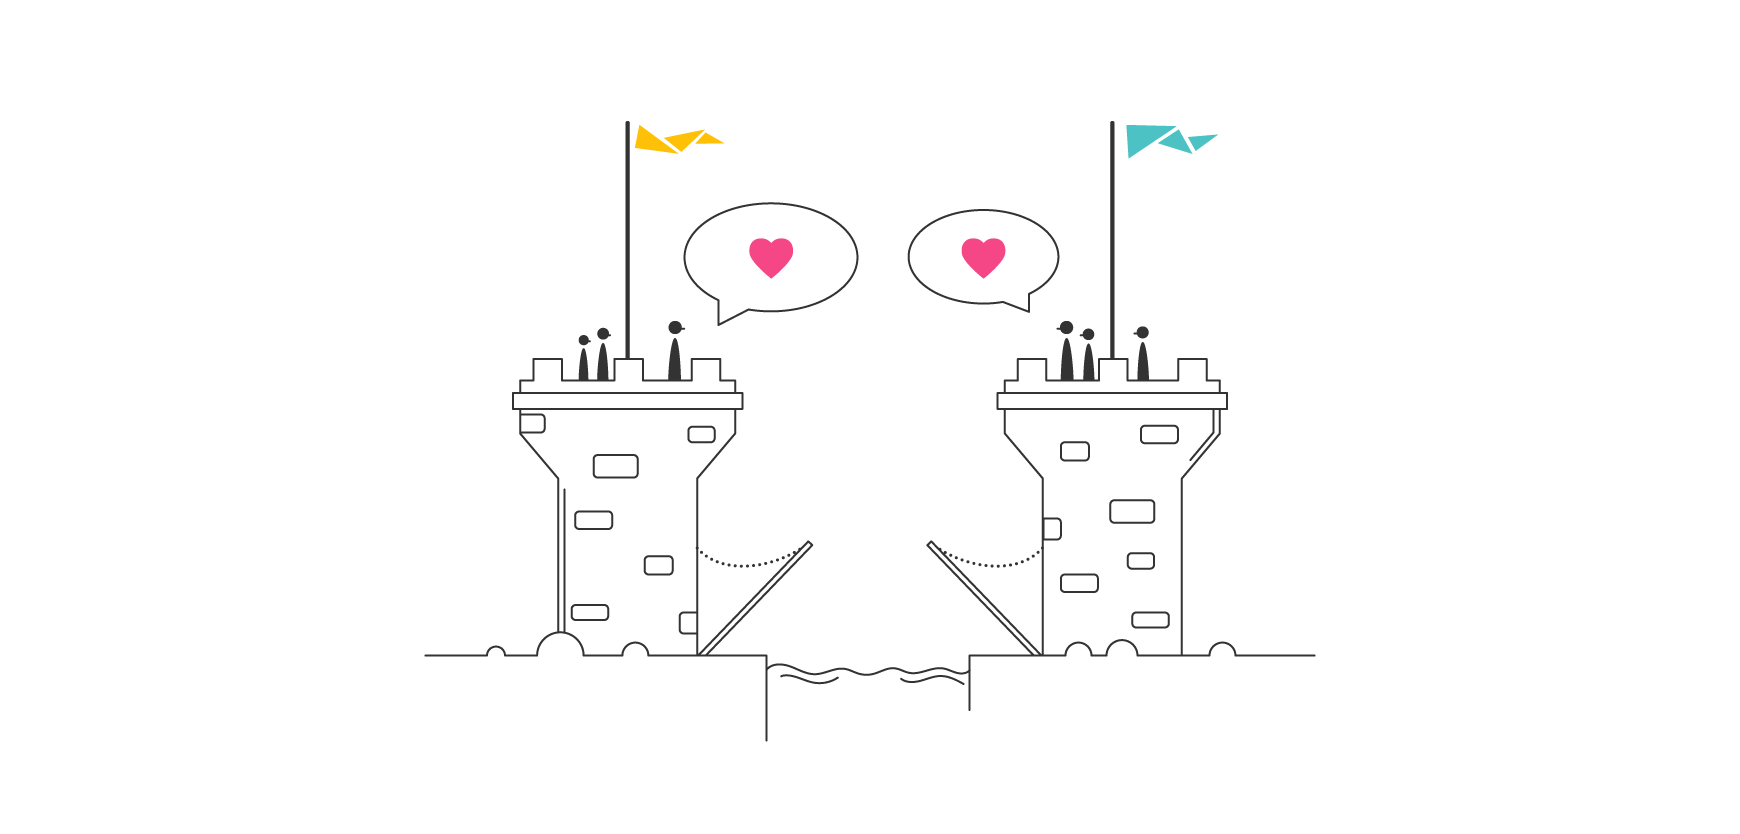 6 Ways to Get More From Your Agency Relationship